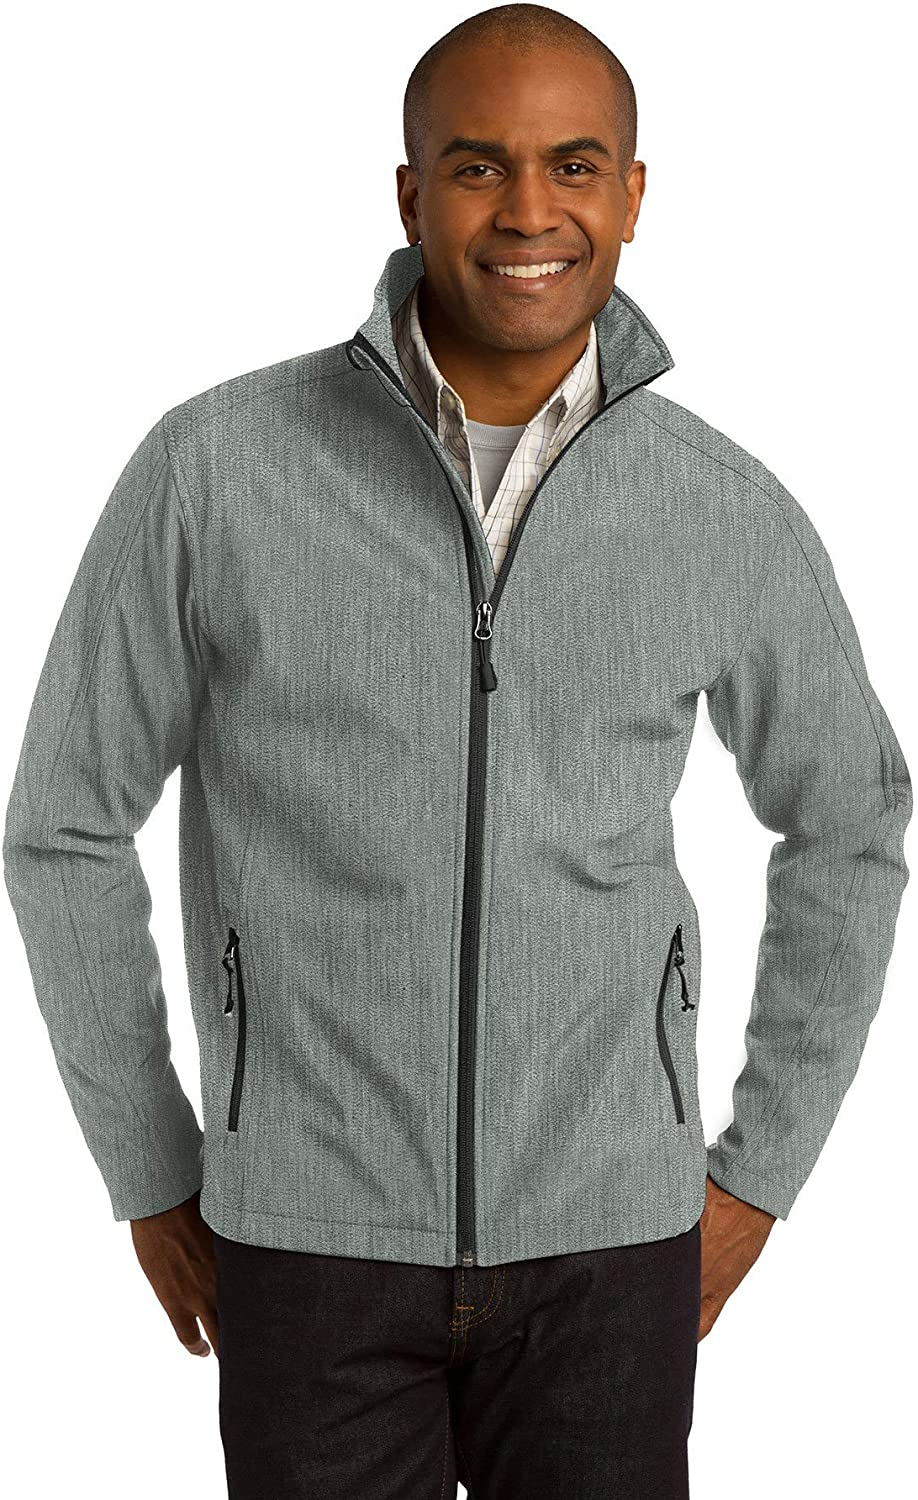 All items in the store Port Authority Men's famous Core Shell Soft Jacket